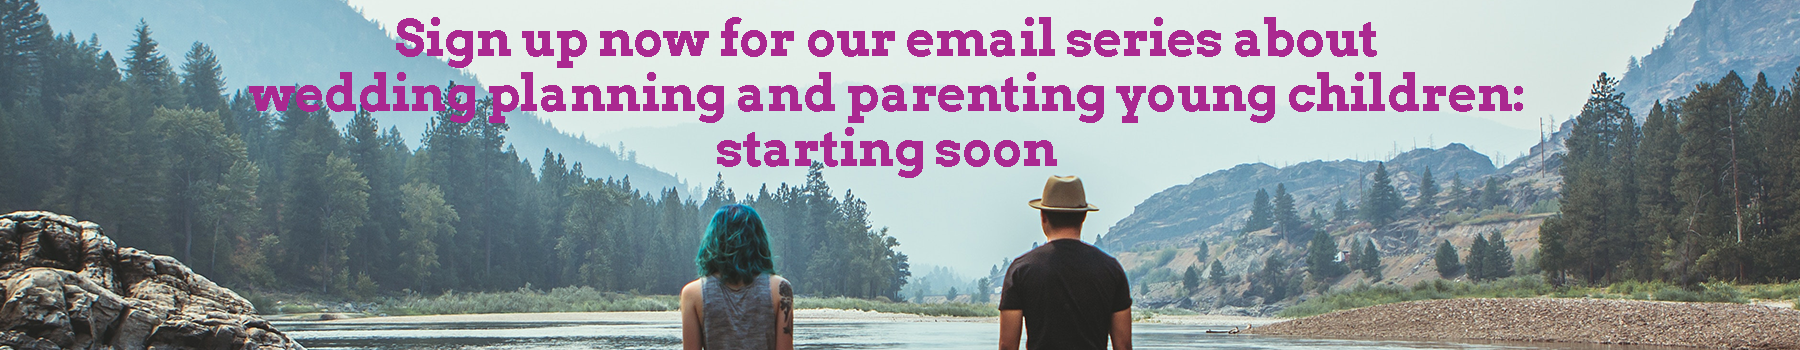 parenting and wedding email series sign up